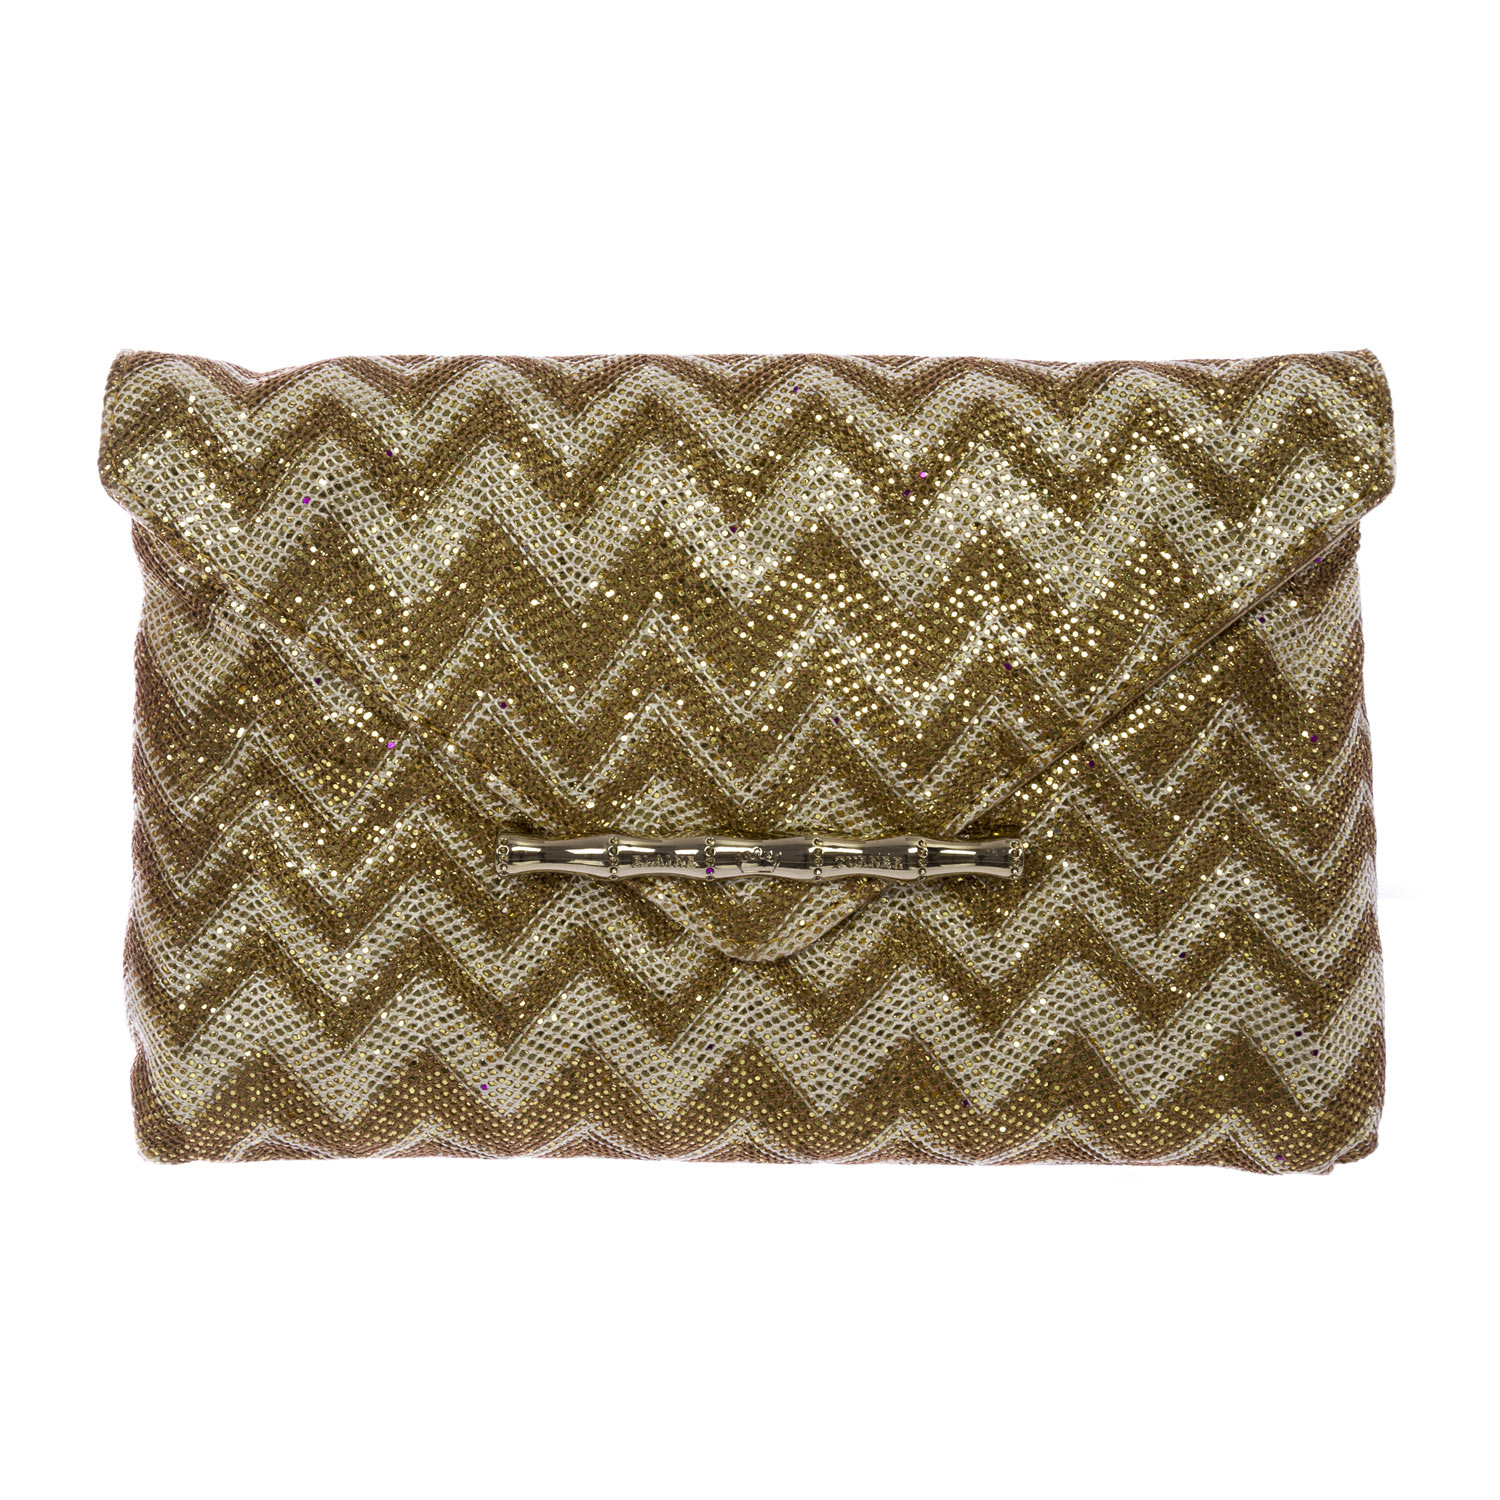 Elaine Turner Women's Zip Zag Bella Envelope Clutch Bag One Size Gold